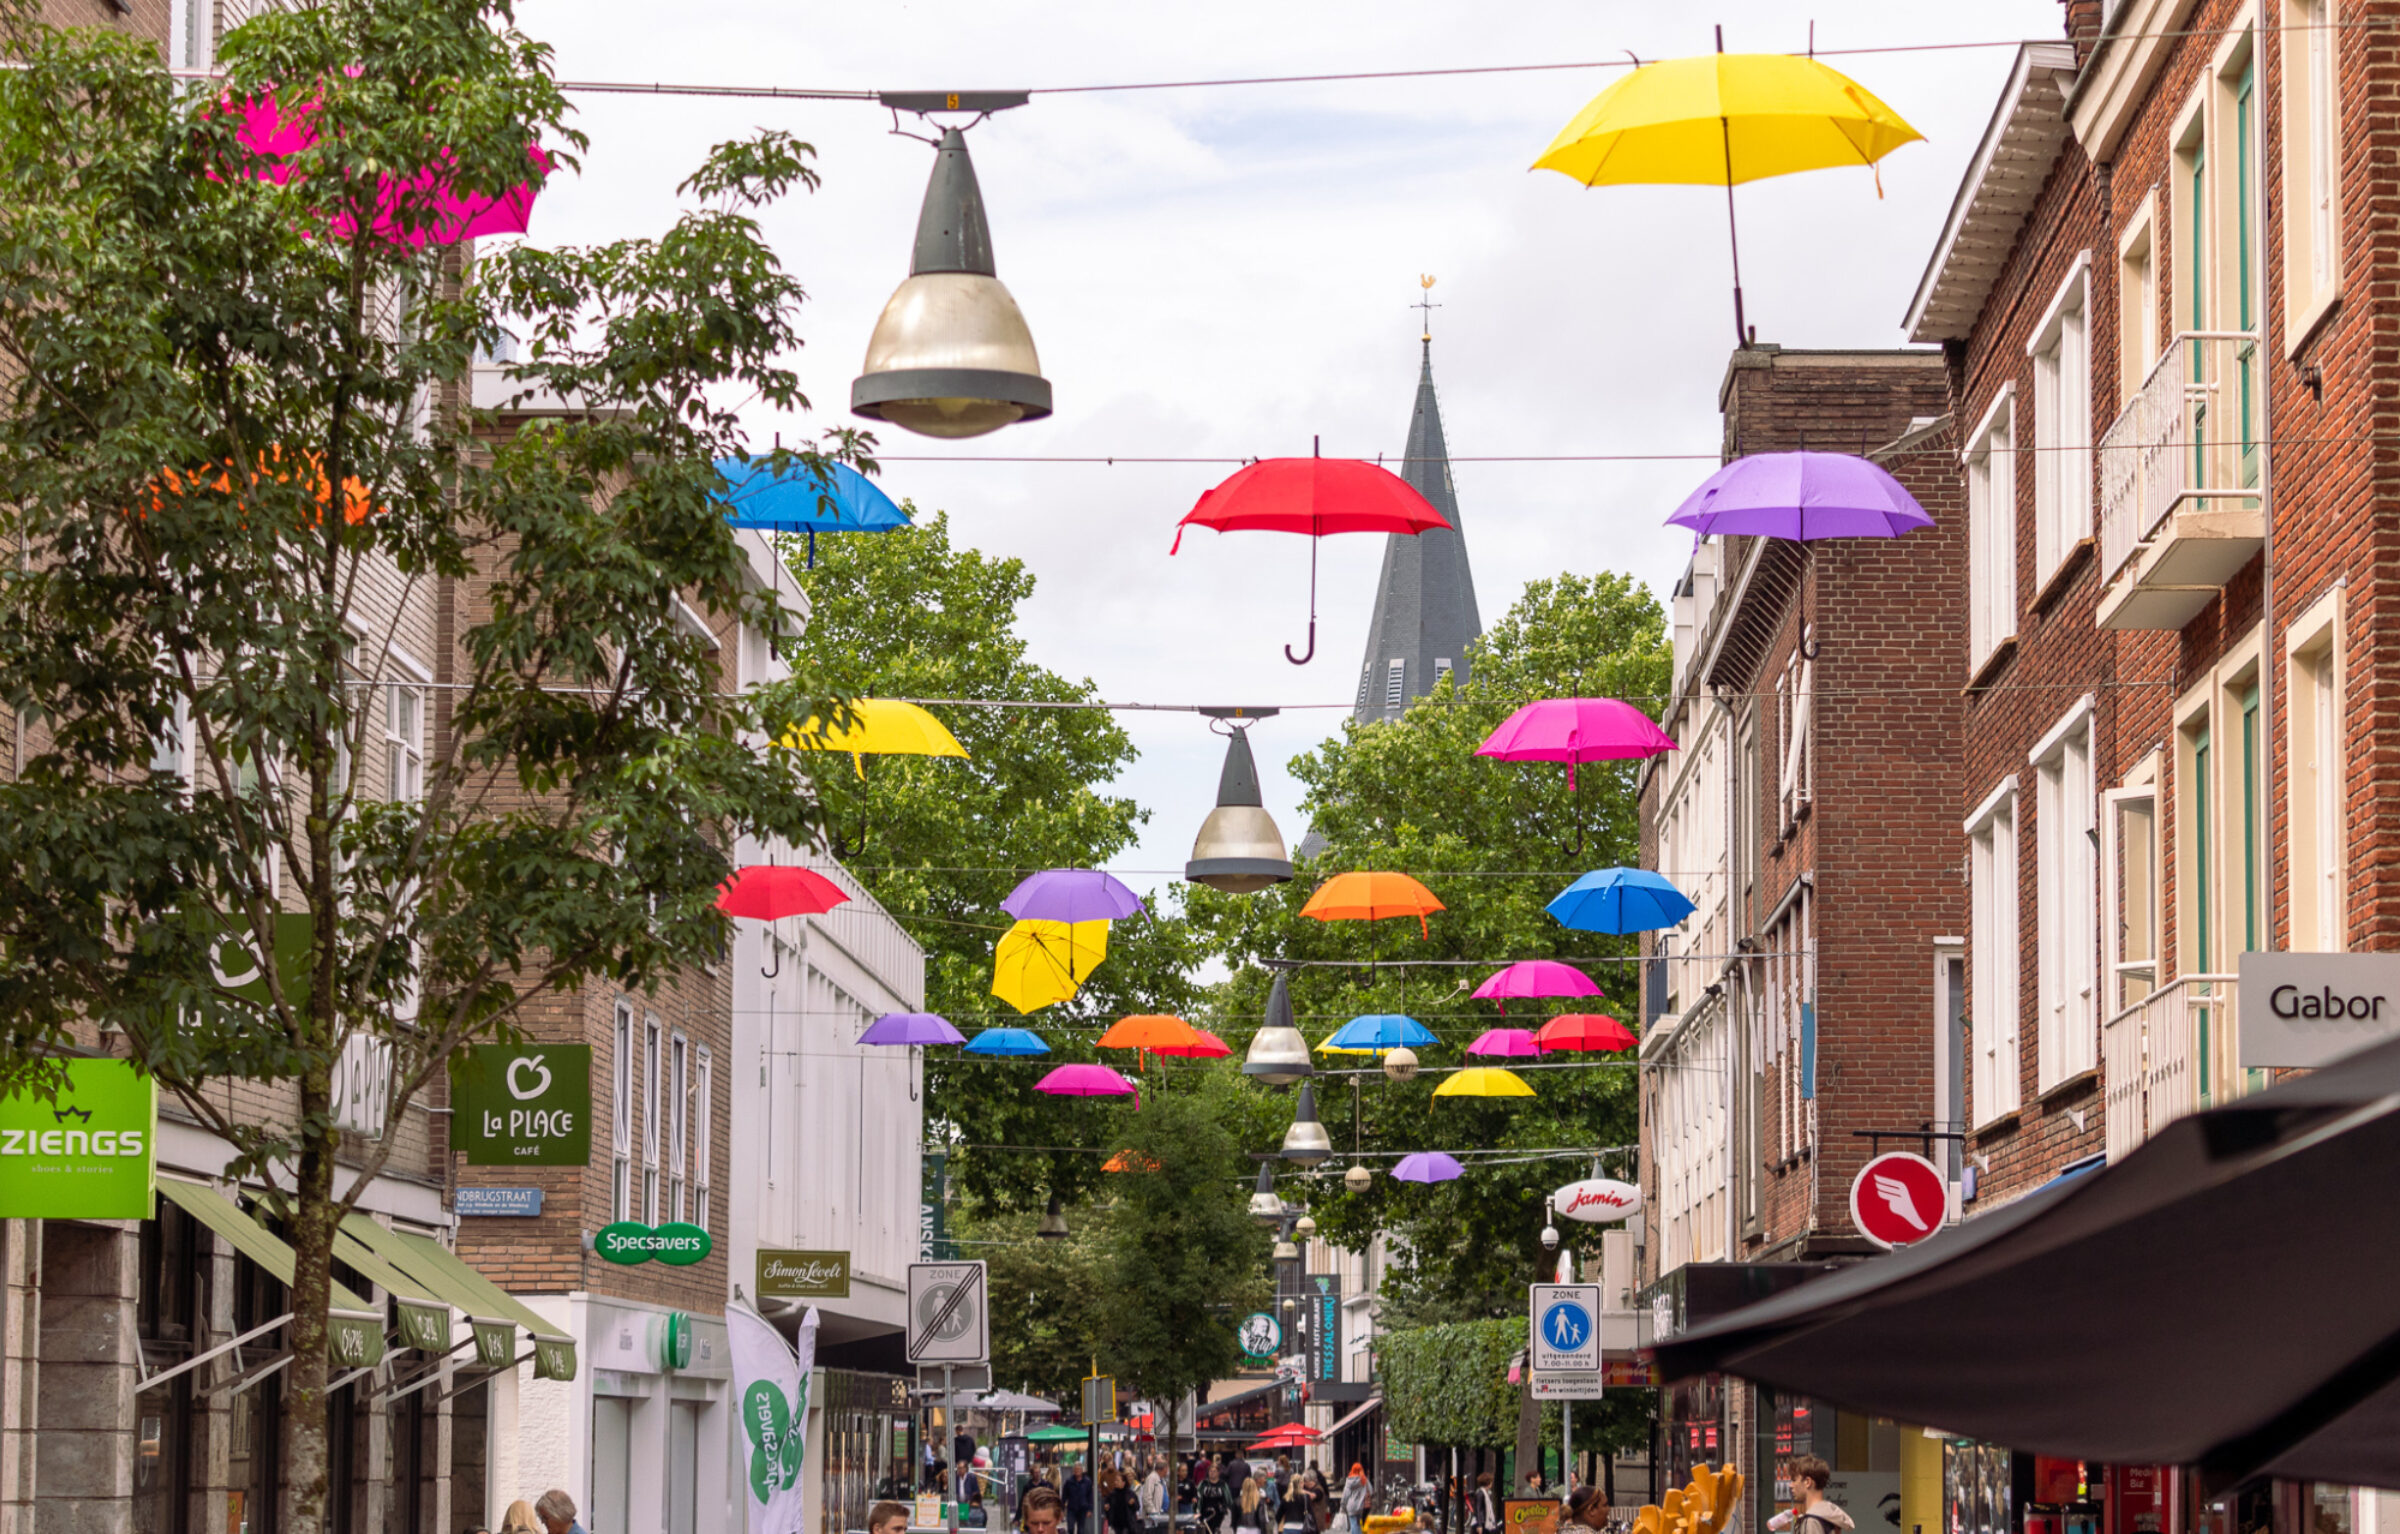 Celebrate the Summer in Enschede